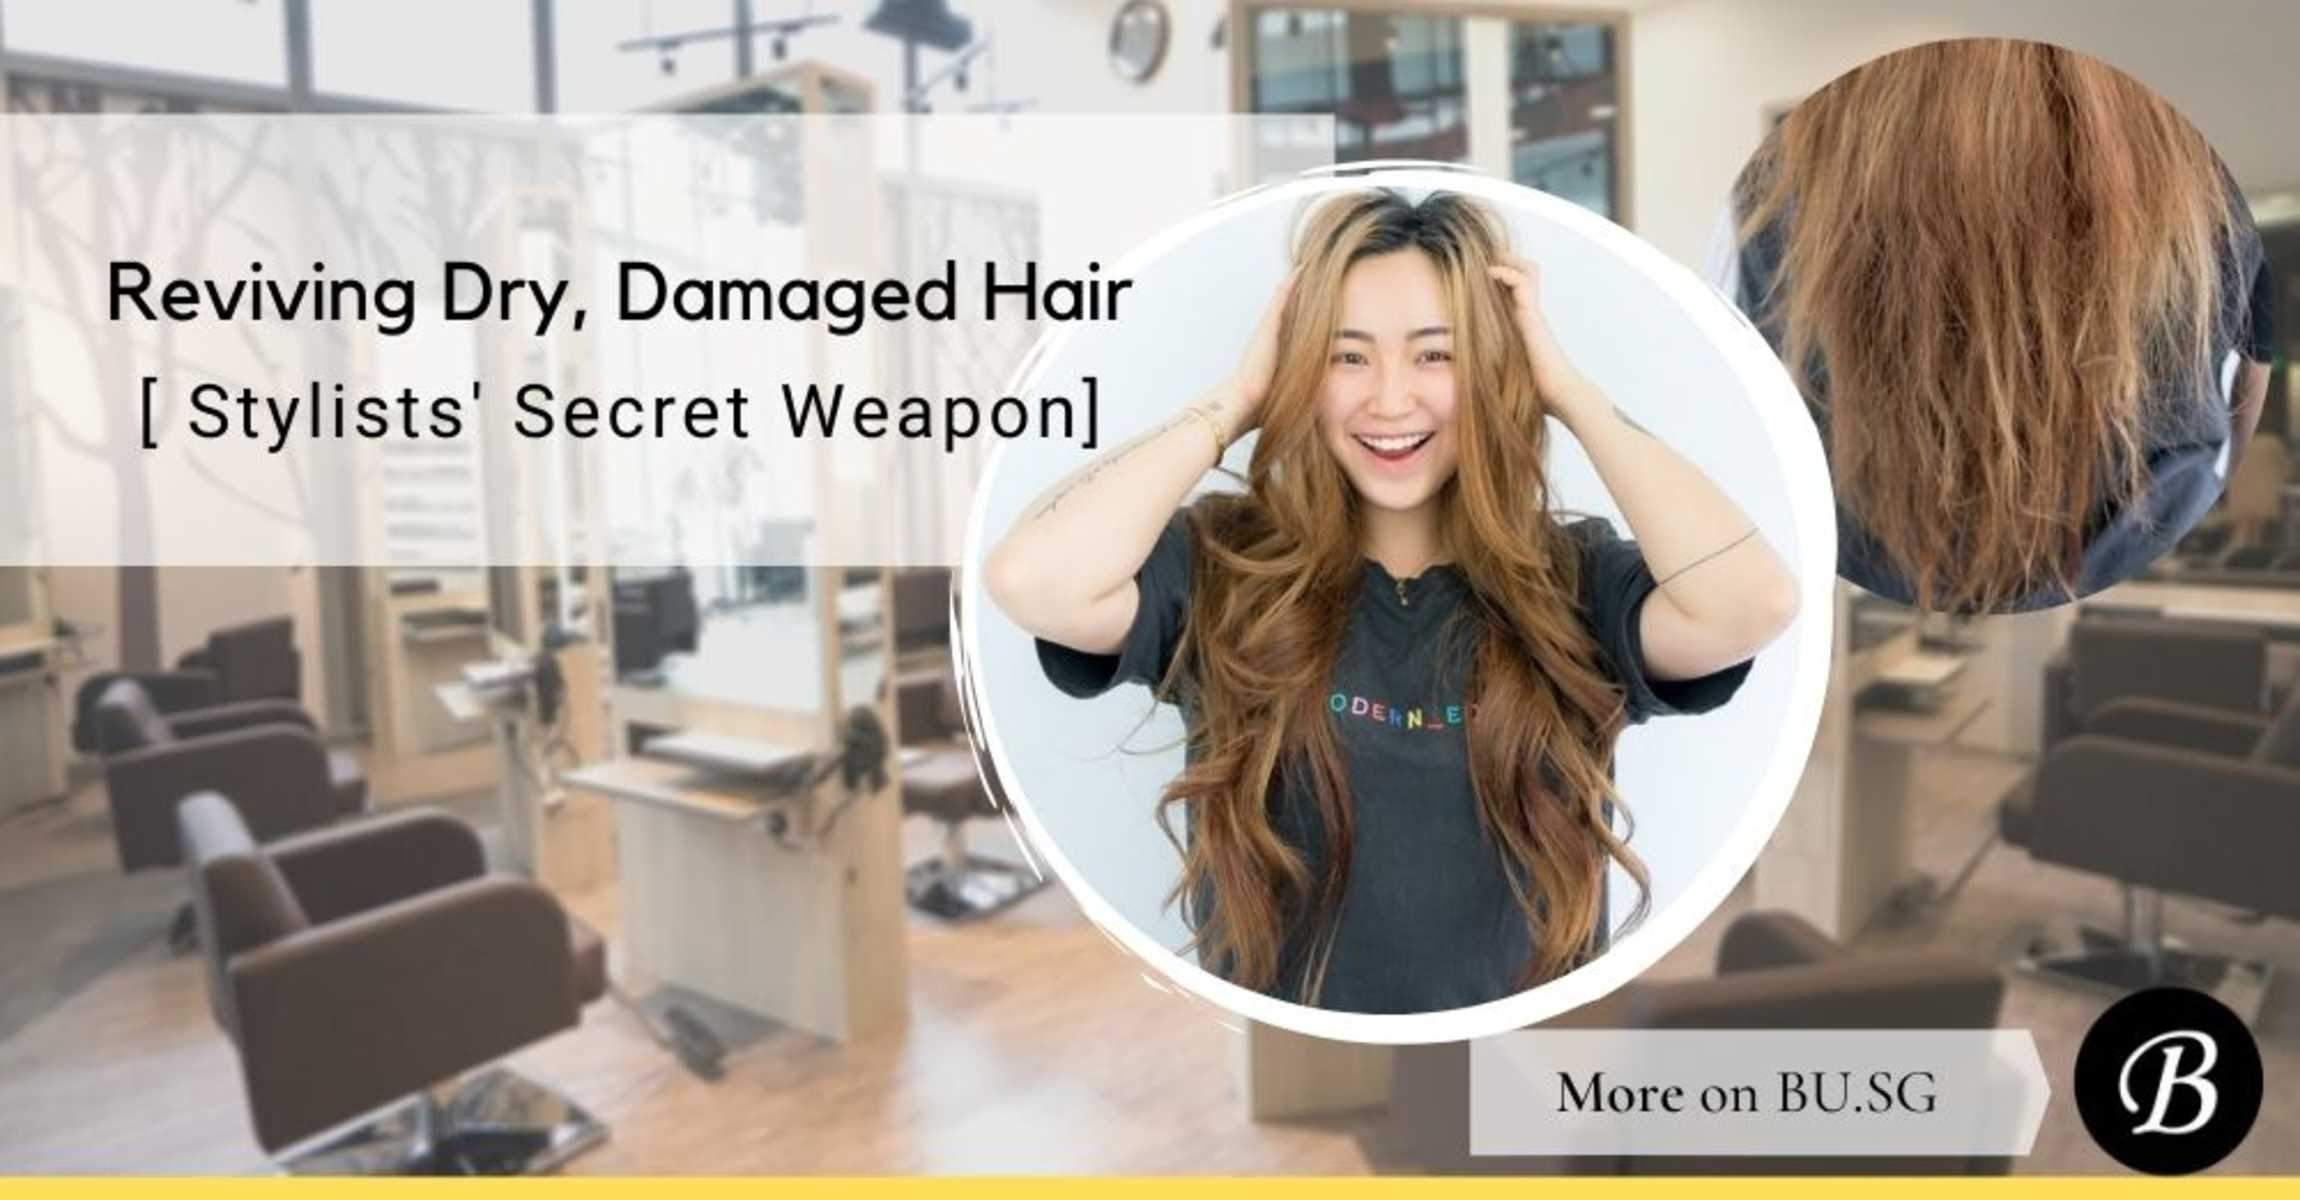 BBO is the Secret Weapon Stylists Use to Revive Ultra Damaged Hair.